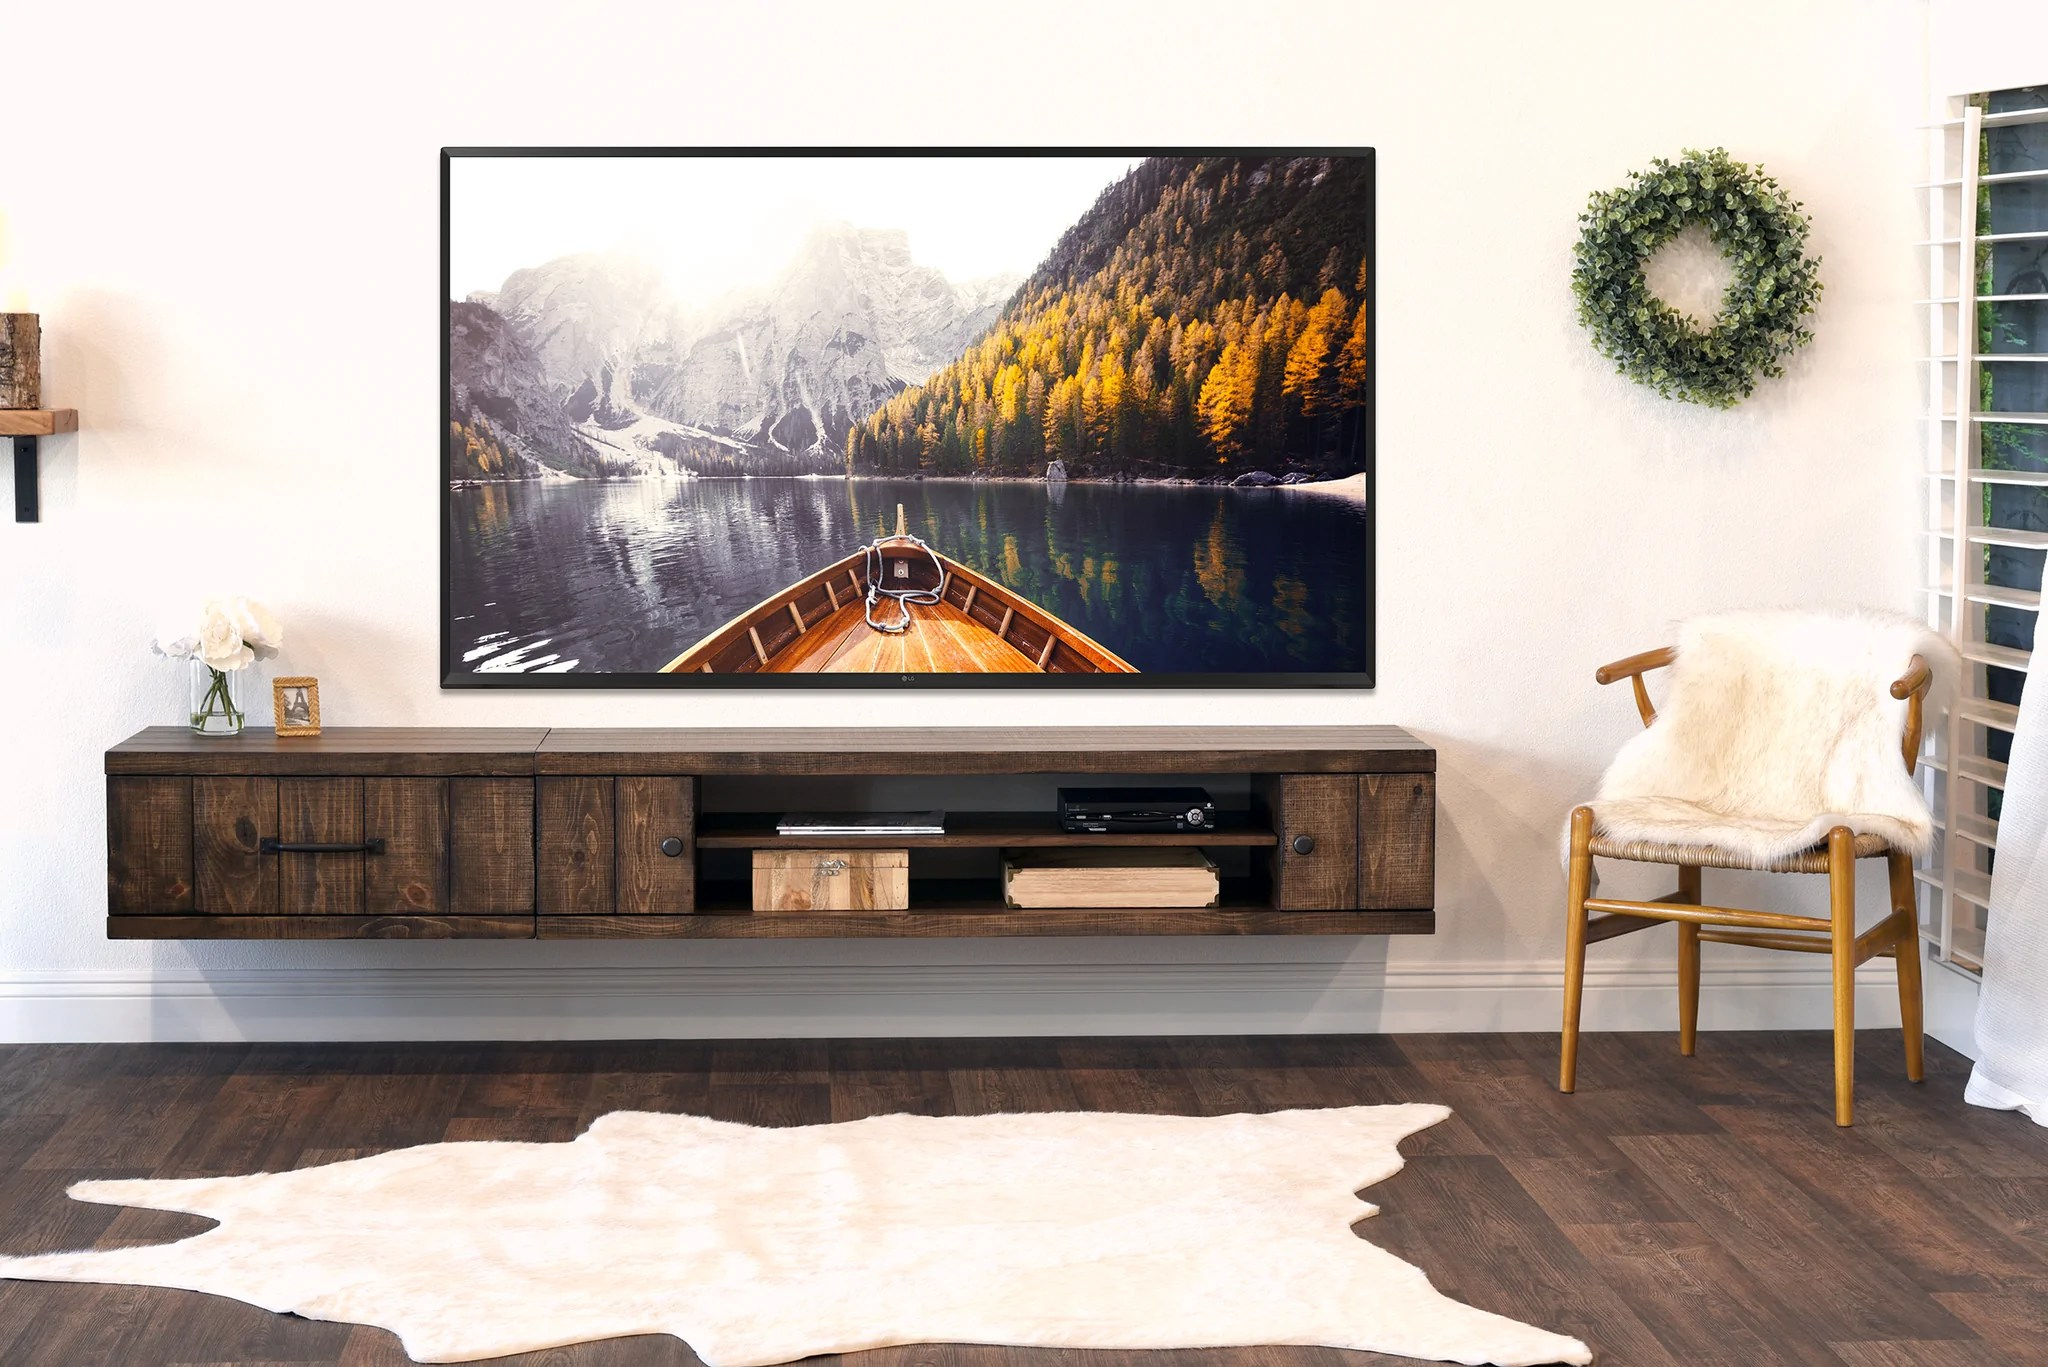 Wood Wall Behind Tv Rustic Barn Wood Style Floating Tv Stand Wall Mount Entertainment Center Farmhouse Spice